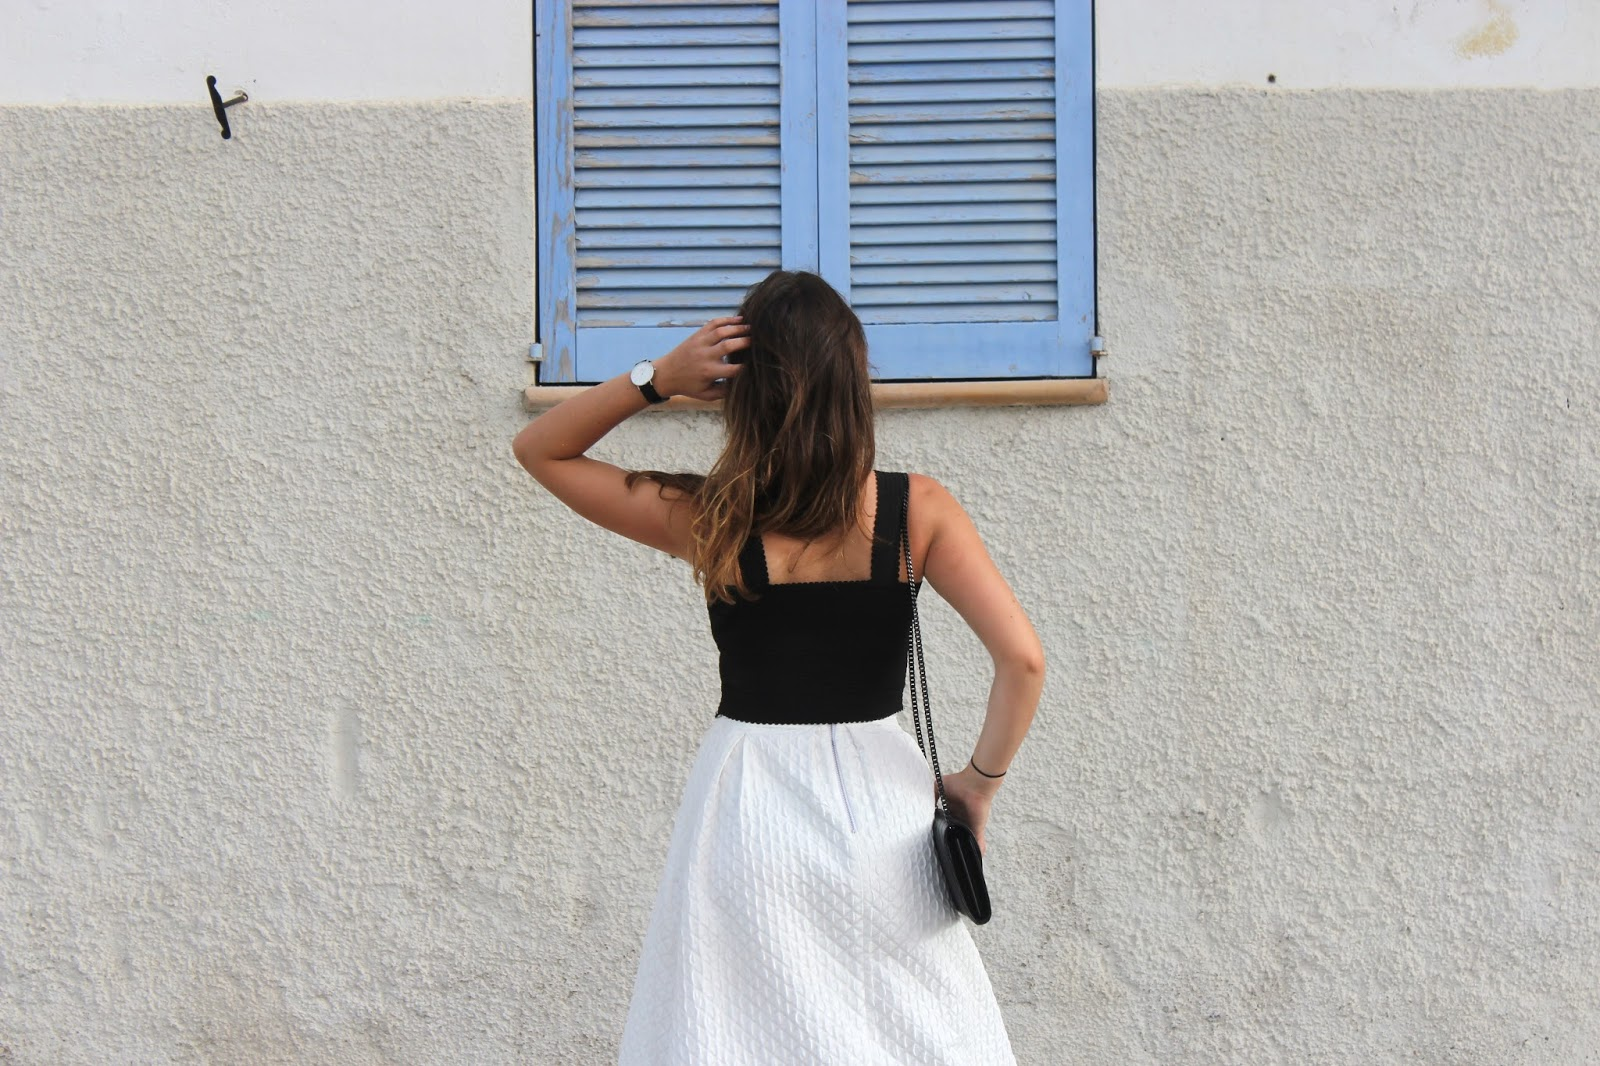 bd8c3a6b953b Arifashionthread - Luxembourg Fashion and Lifestyle Blog  Ibiza - go ...